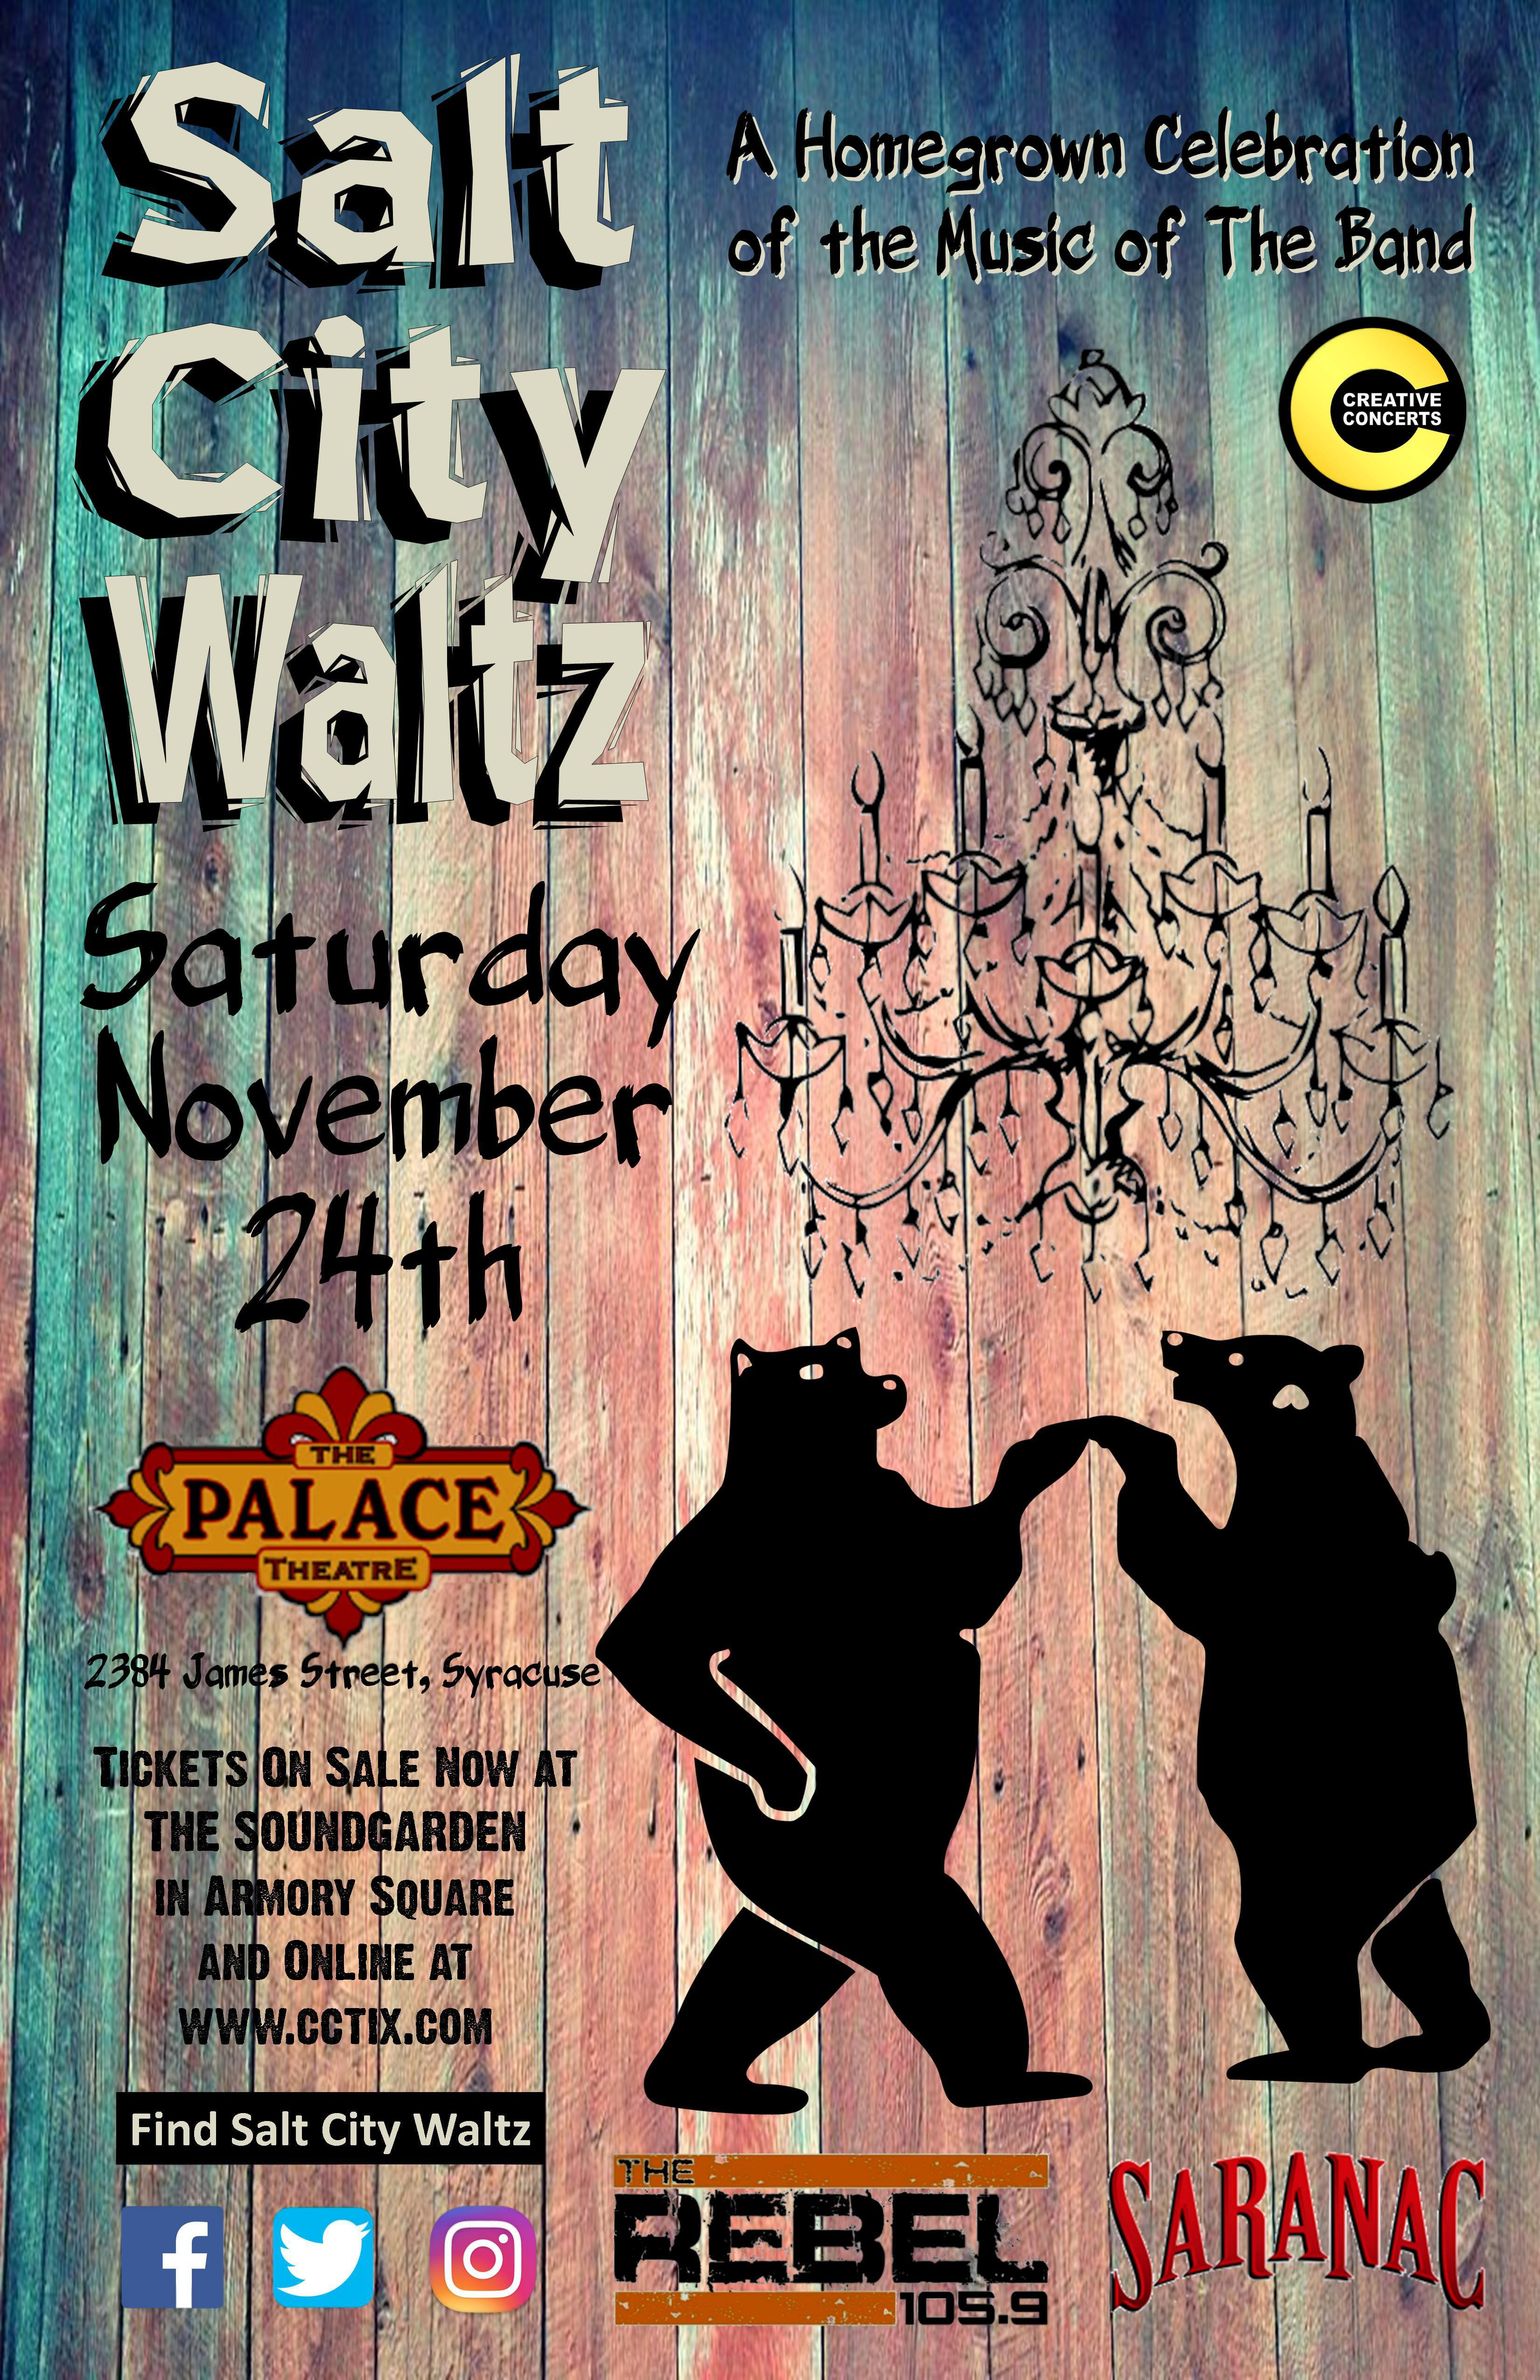 The Salt City Waltz returns to the Palace Theater on Nov. 24th!